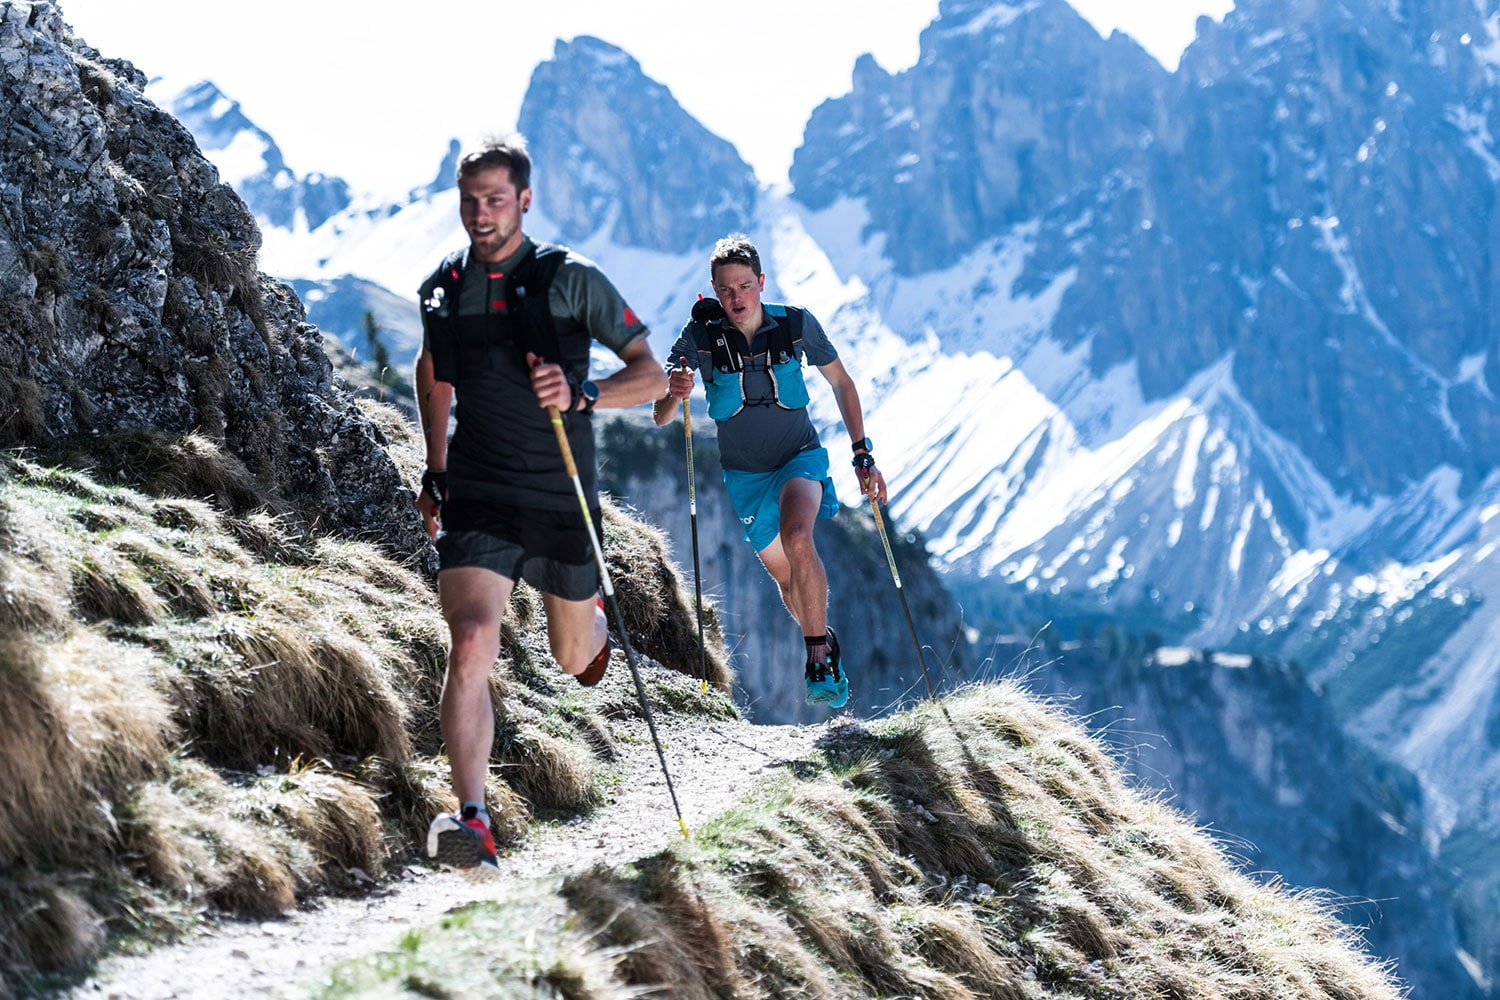 Trailrunning with poles